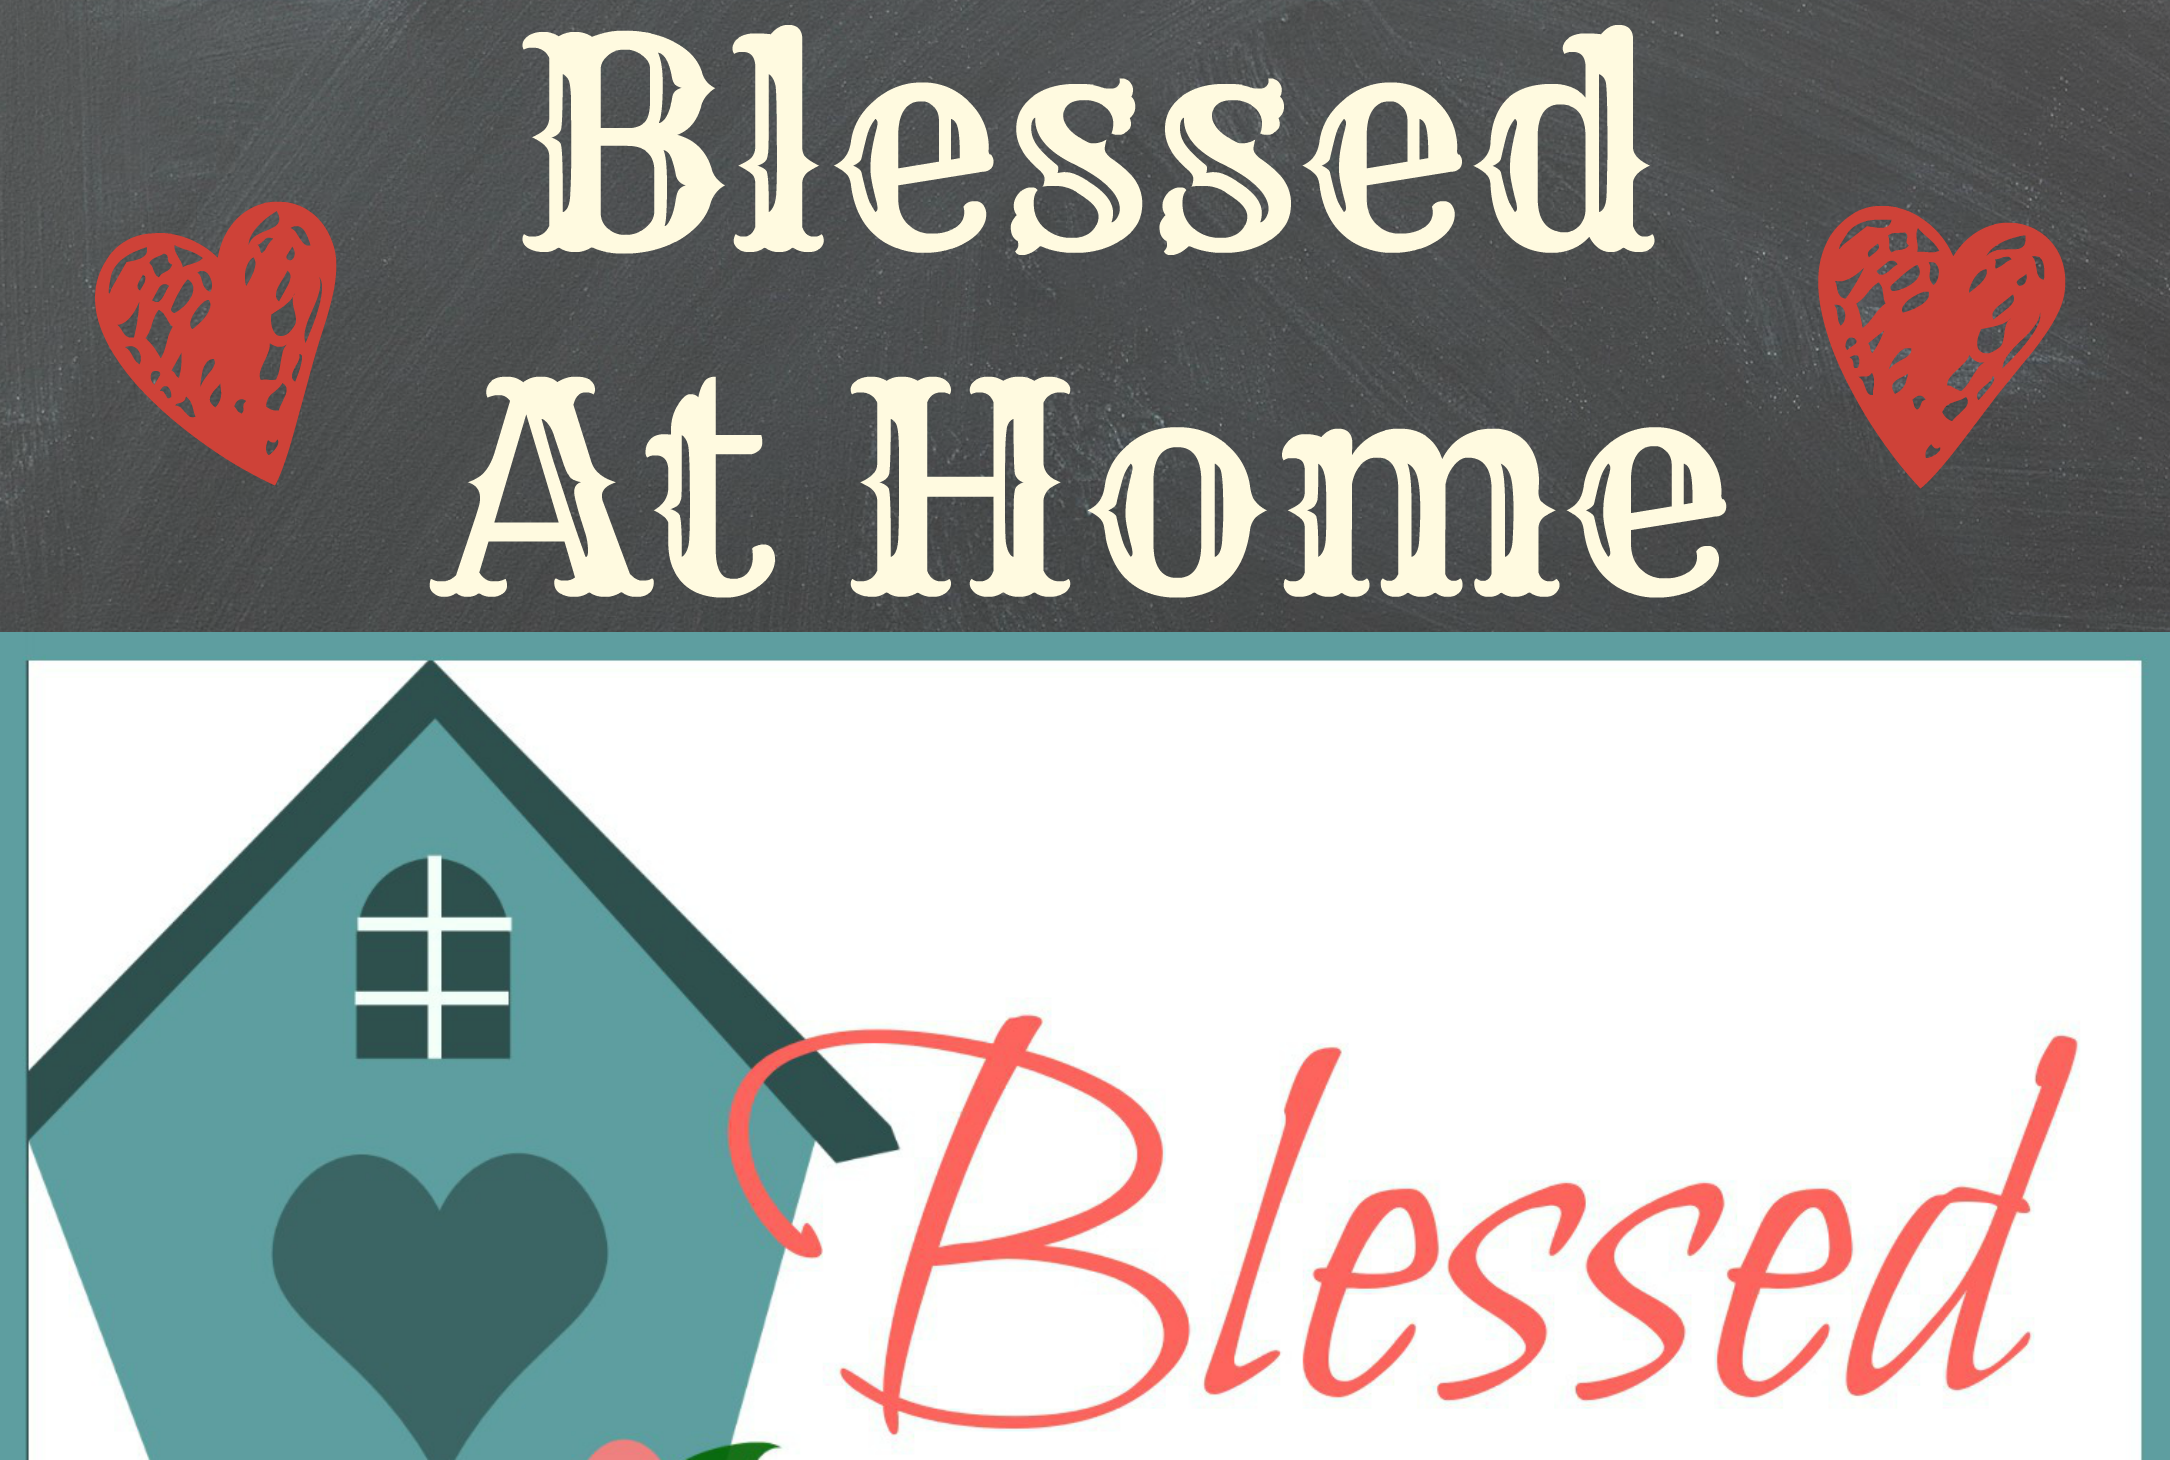 Blessed At Home featured each Thursday on WholeHearted Home with contributing authors from your favorite blogs.